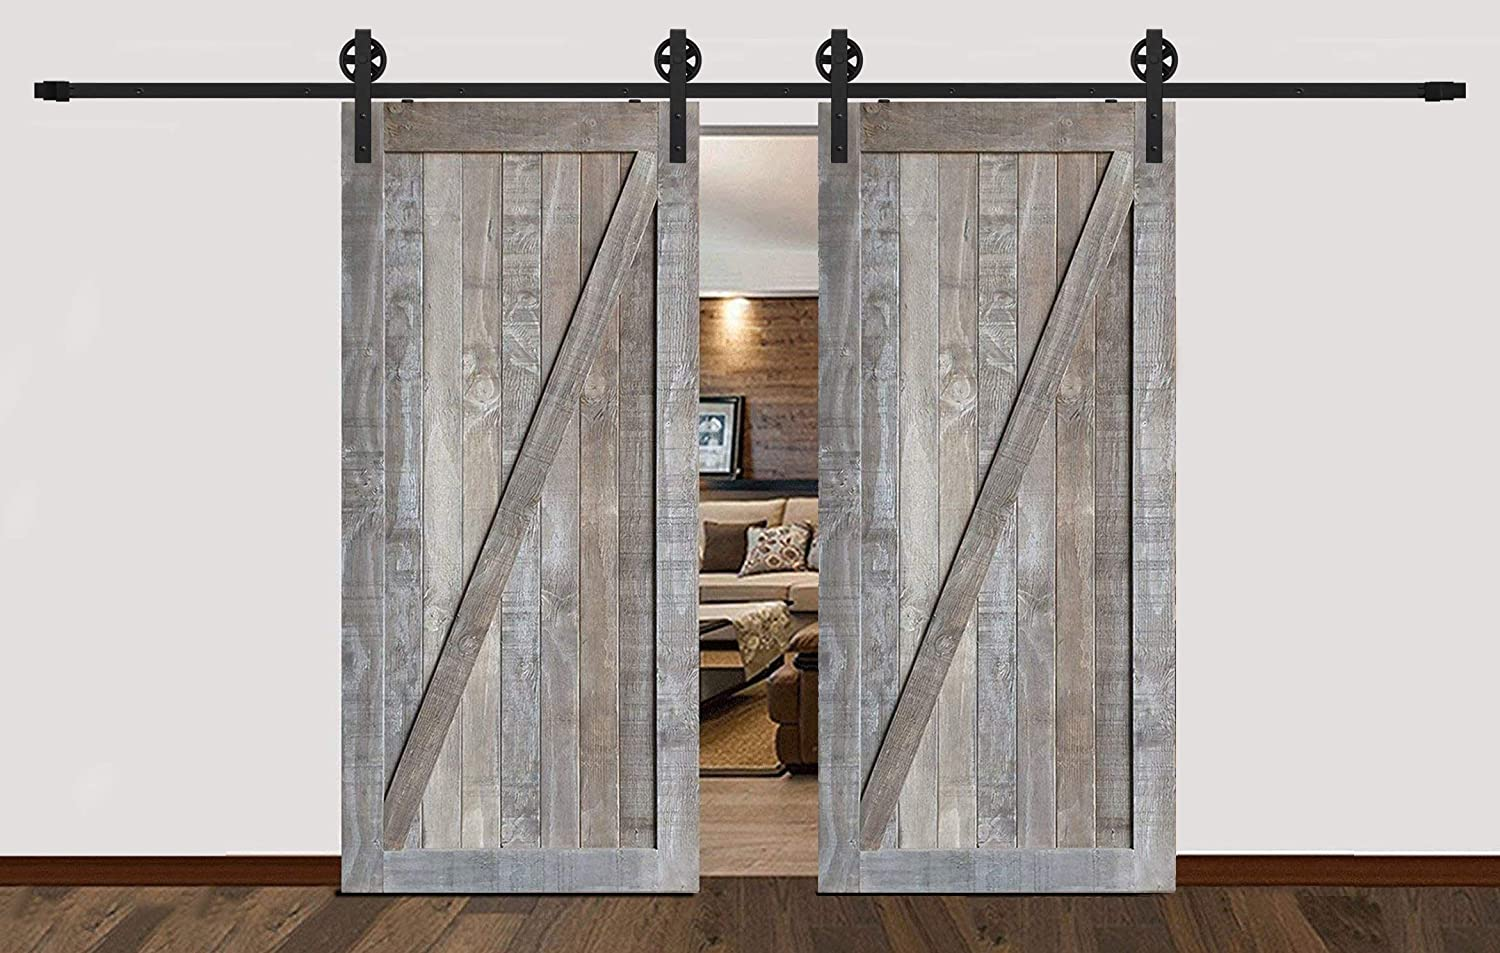 8FT/244CM Big Black Wheel Design Hangers Double Barn Door Suspension System Sliding Barn Door Track Hardware Kit Billion Hardware